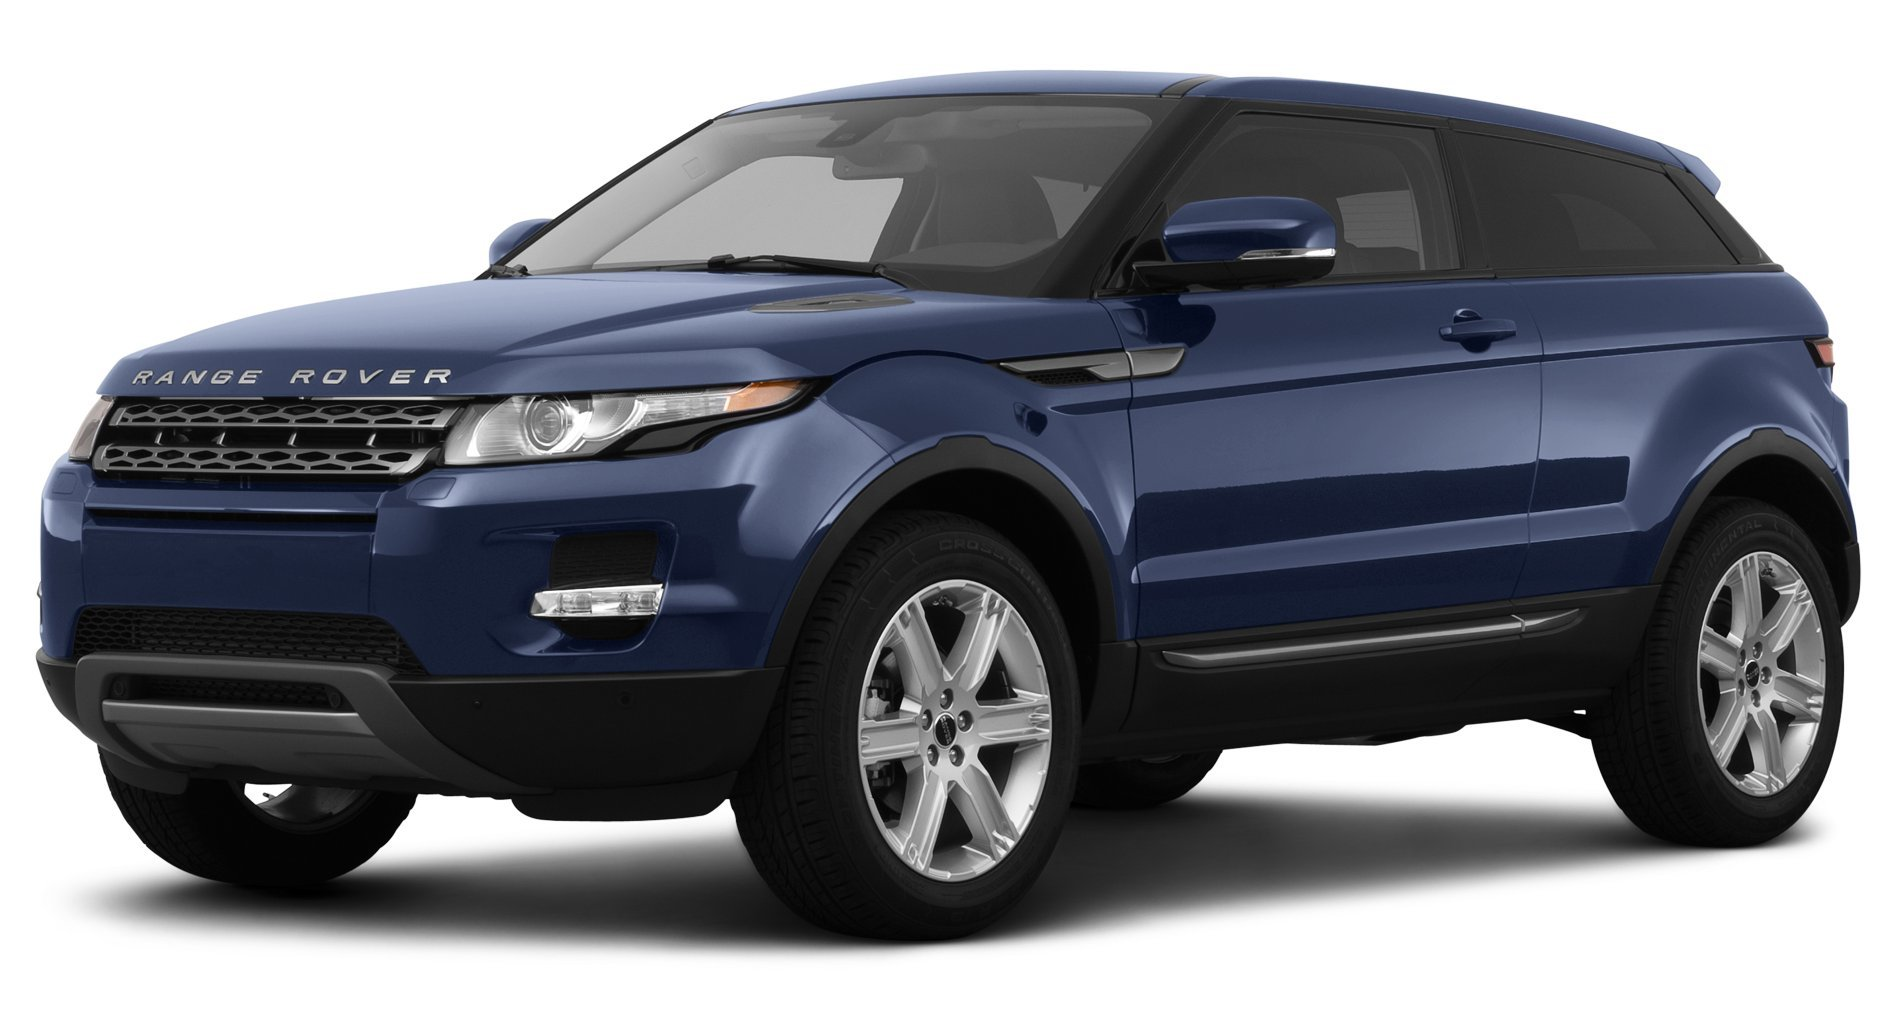 2 Door Range Rover >> Amazon Com 2012 Land Rover Range Rover Evoque Reviews Images And